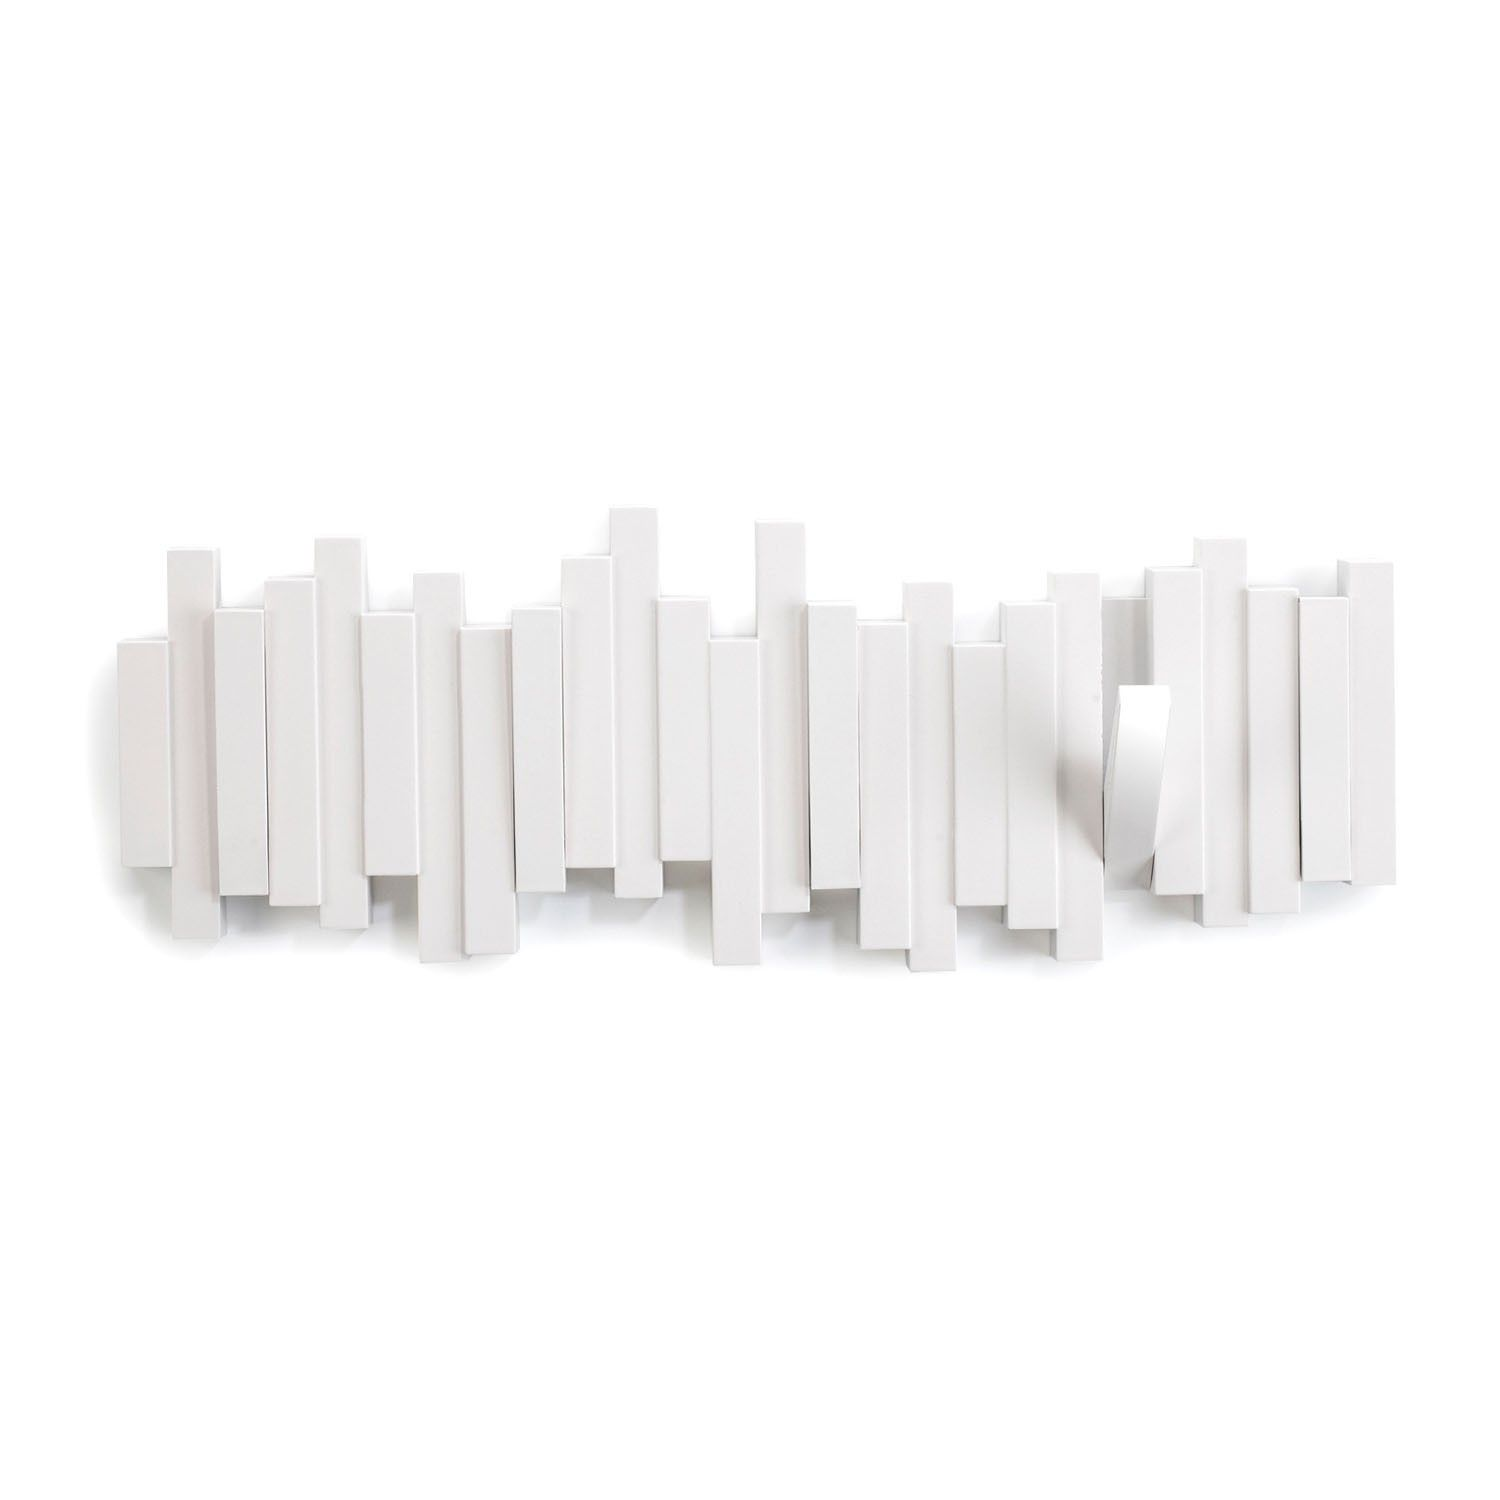 Perchero De Pared Multi Sticks Blanco Orden En Casa - Percheros-pared